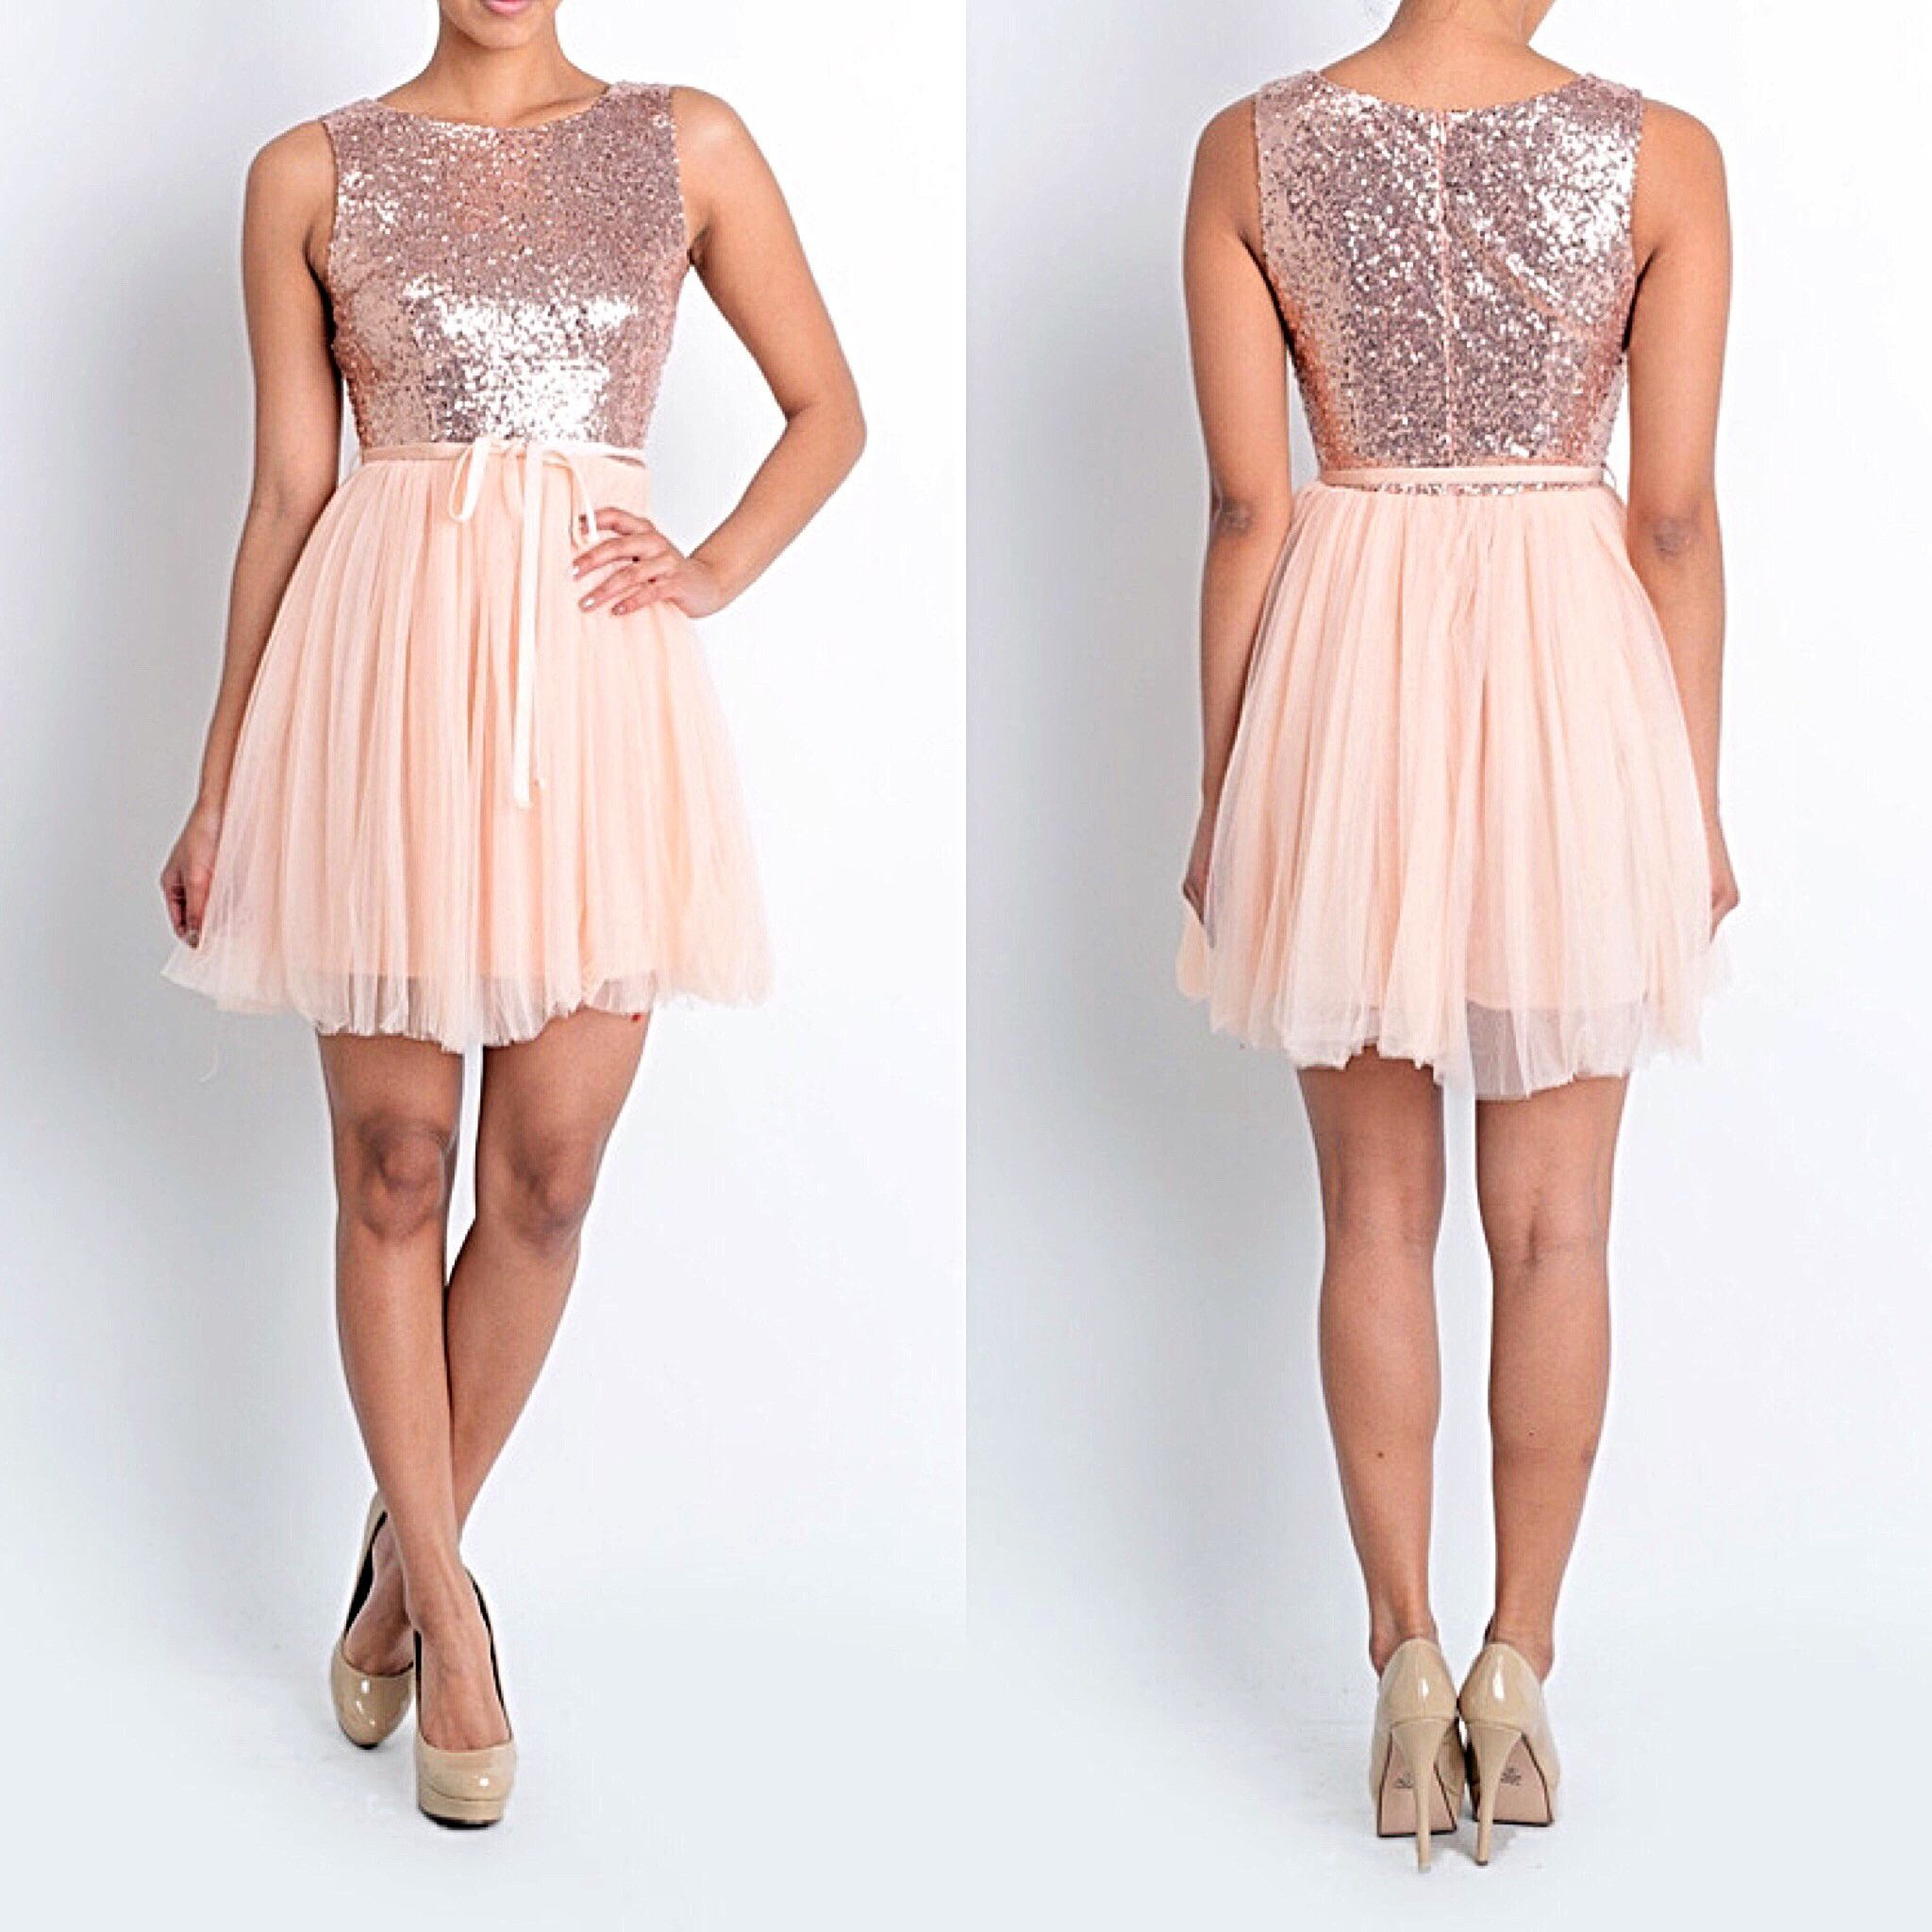 Affordable Short Sequin Rose Gold Bridesmaid Dress Tulle Party Dress Prom Even Rose Gold Bridesmaid Dress Short Gold Bridesmaid Dresses Gold Bridesmaid Dresses [ 2048 x 2048 Pixel ]